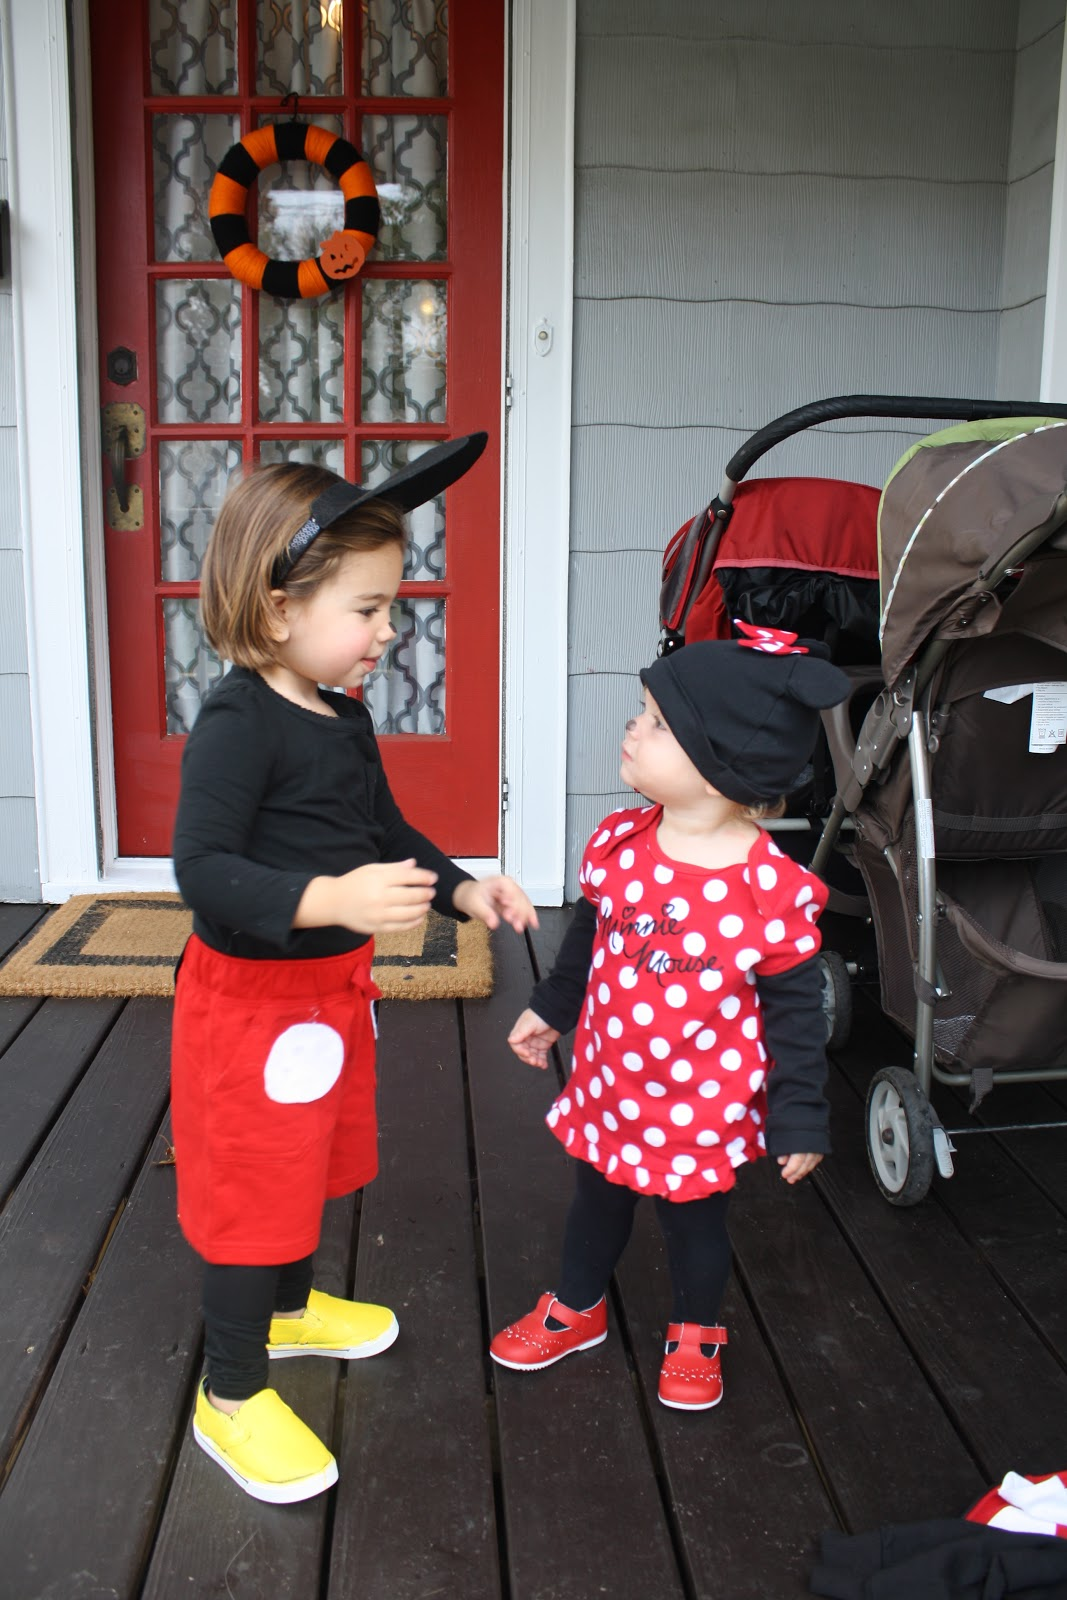 sc 1 st  The Chirping Moms & DIY Halloween Costume: Mickey Mouse - The Chirping Moms